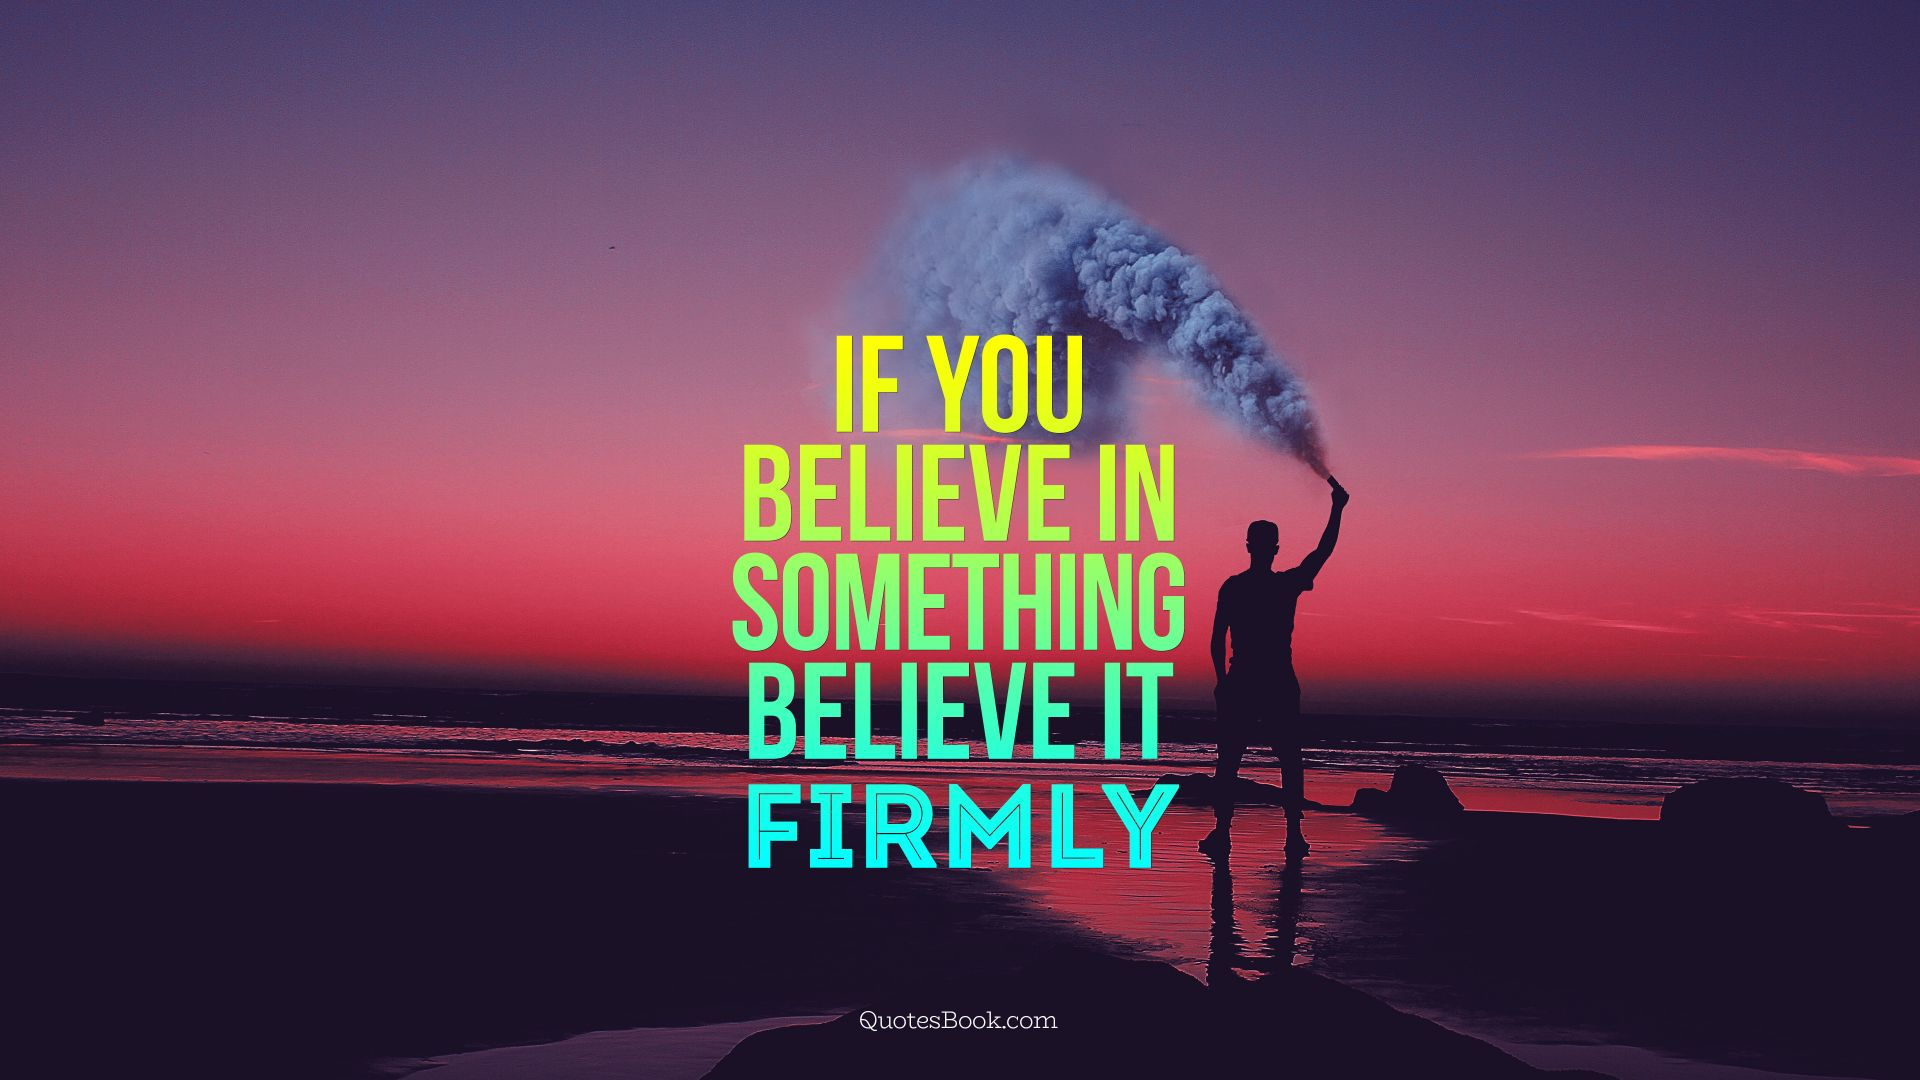 If you believe in something believe it firmly